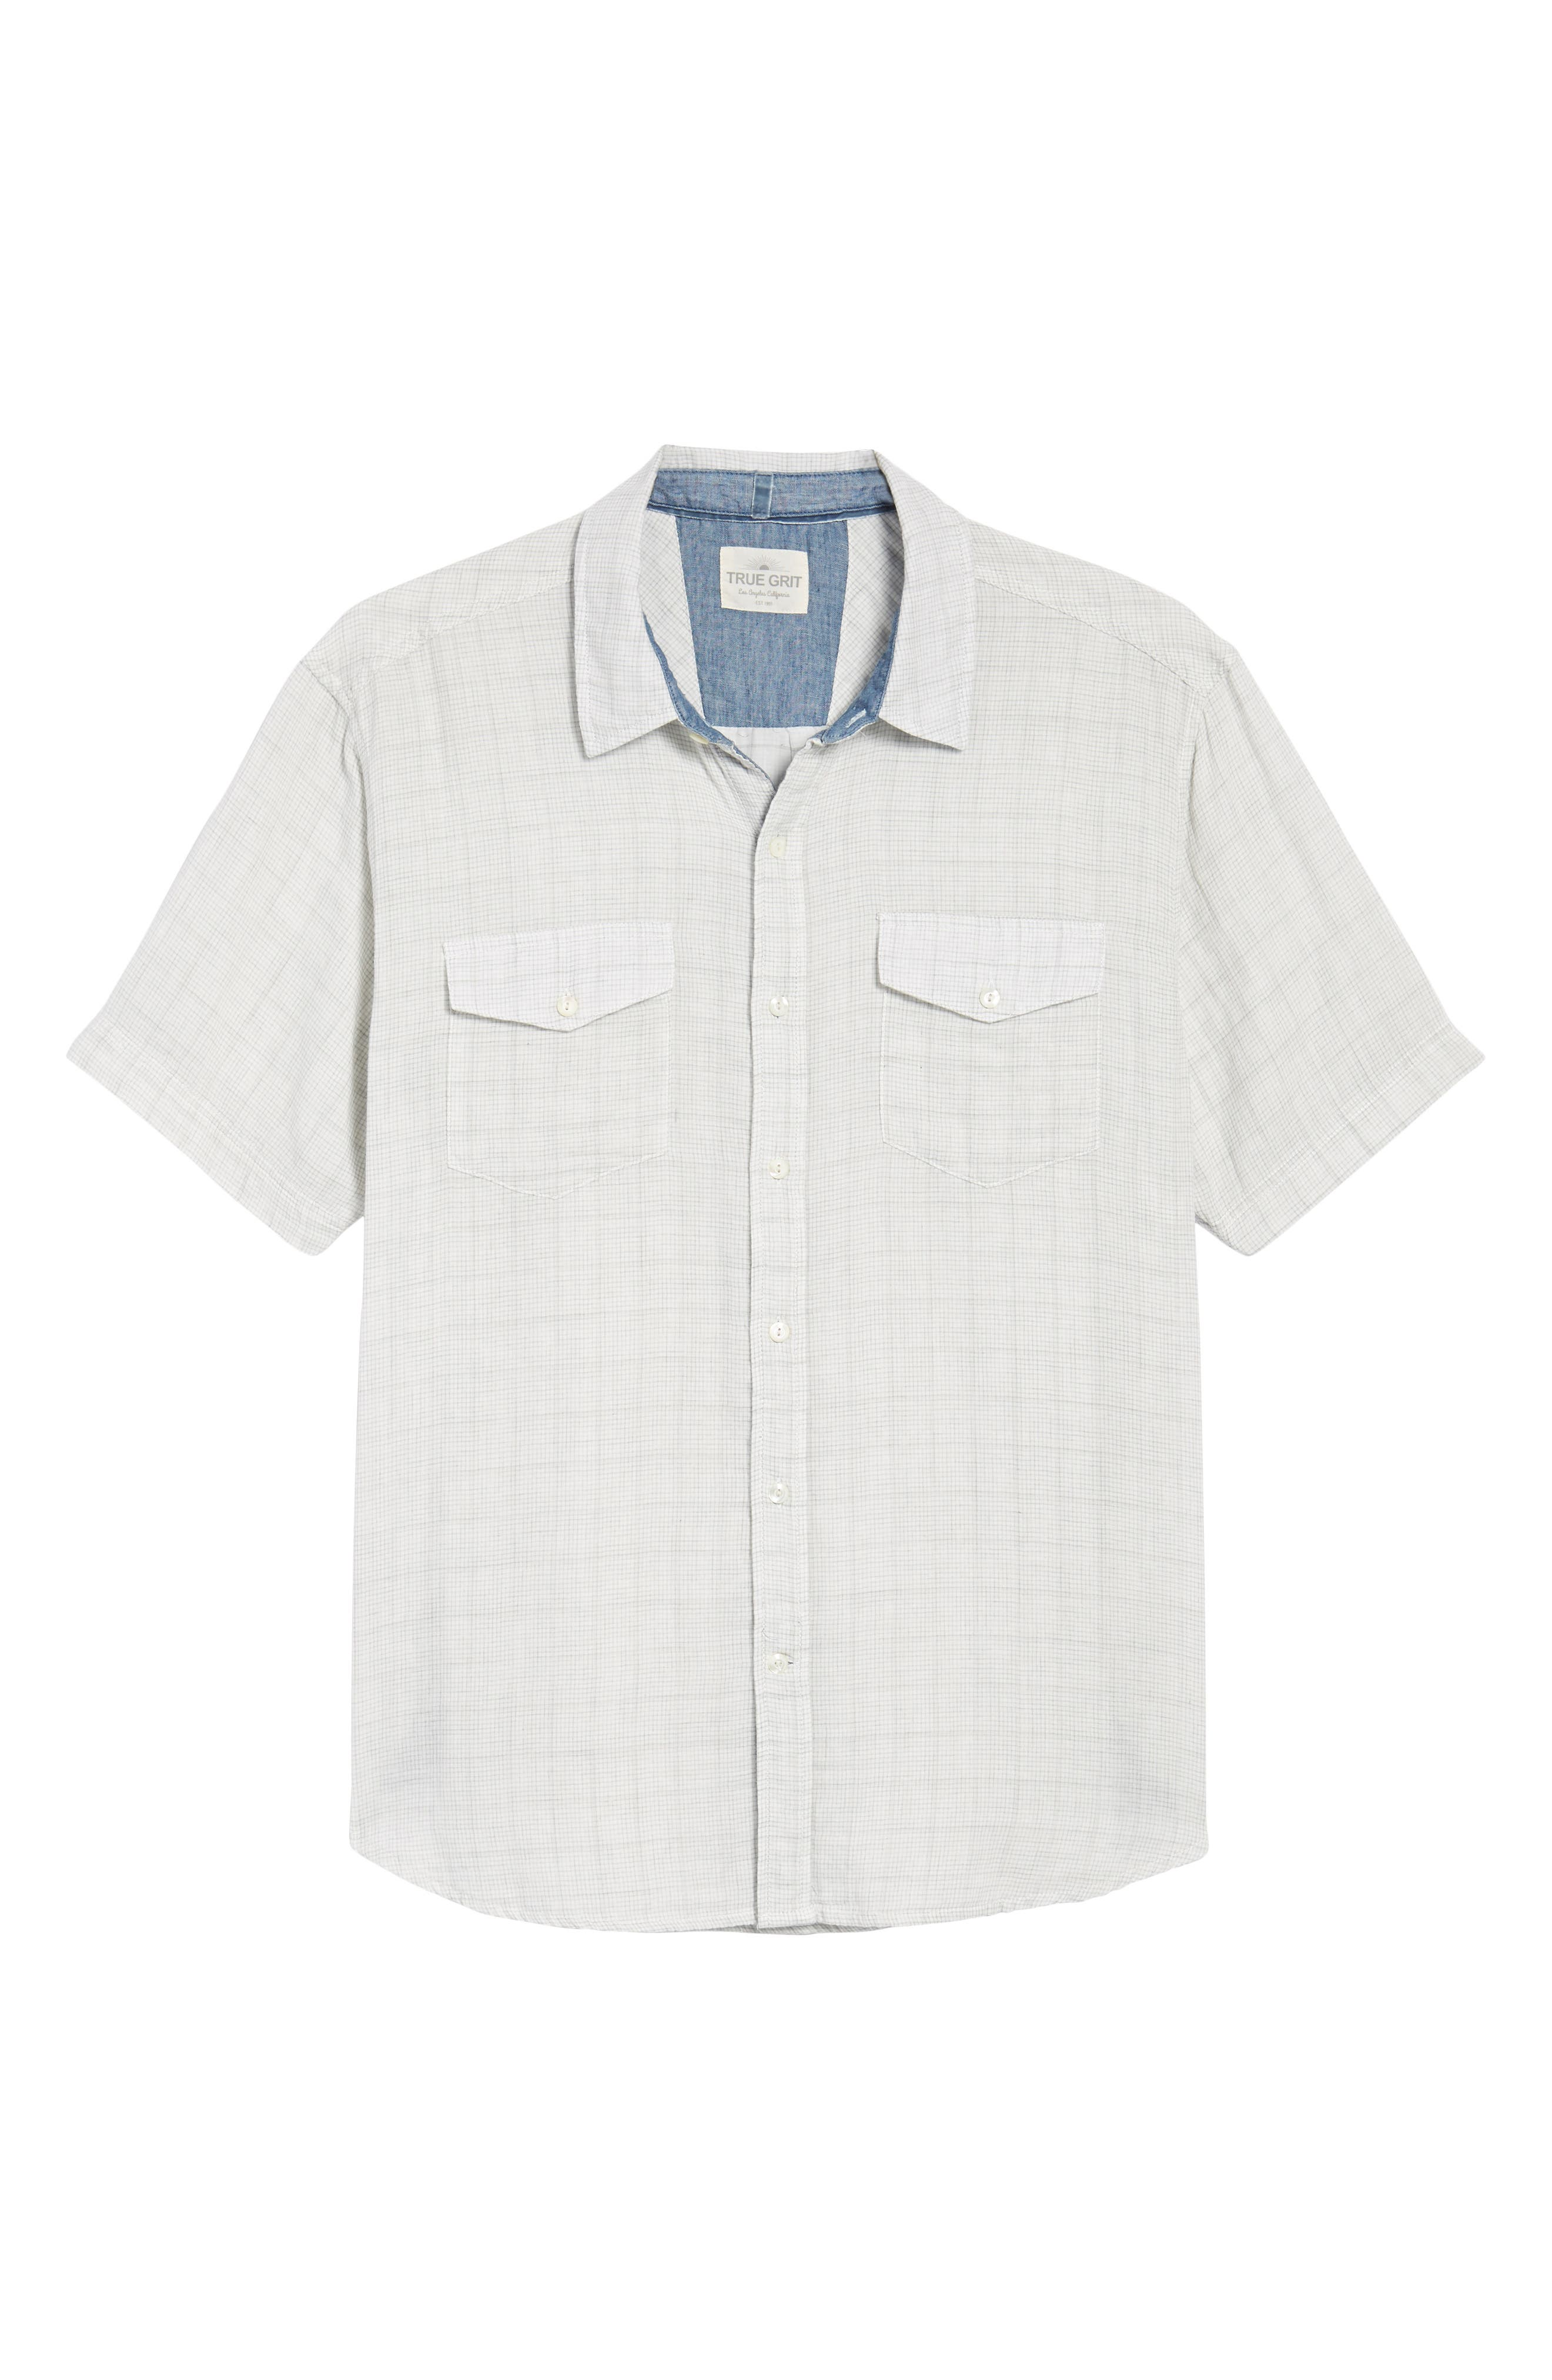 Crossroads Check Sport Shirt,                             Alternate thumbnail 6, color,                             020